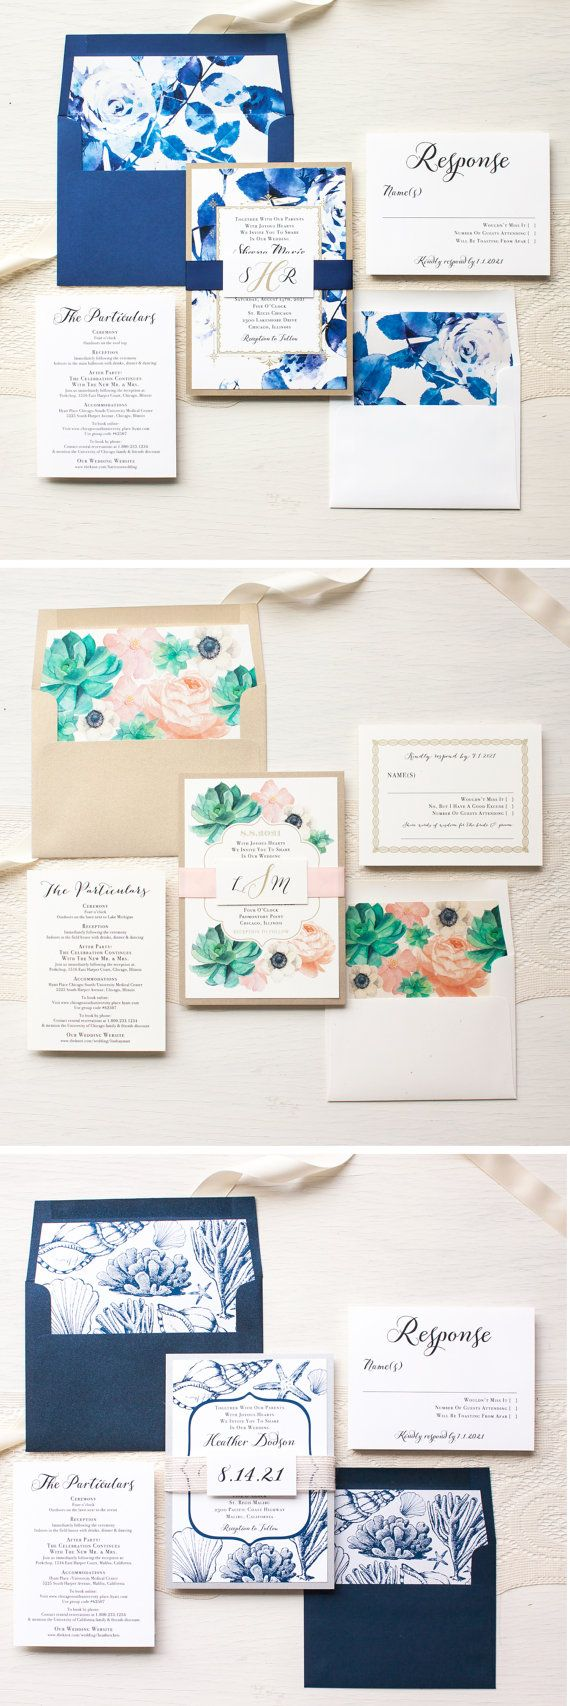 beach wedding invitation examples%0A Succulent Wedding Invitations Gold and Blush Invitations